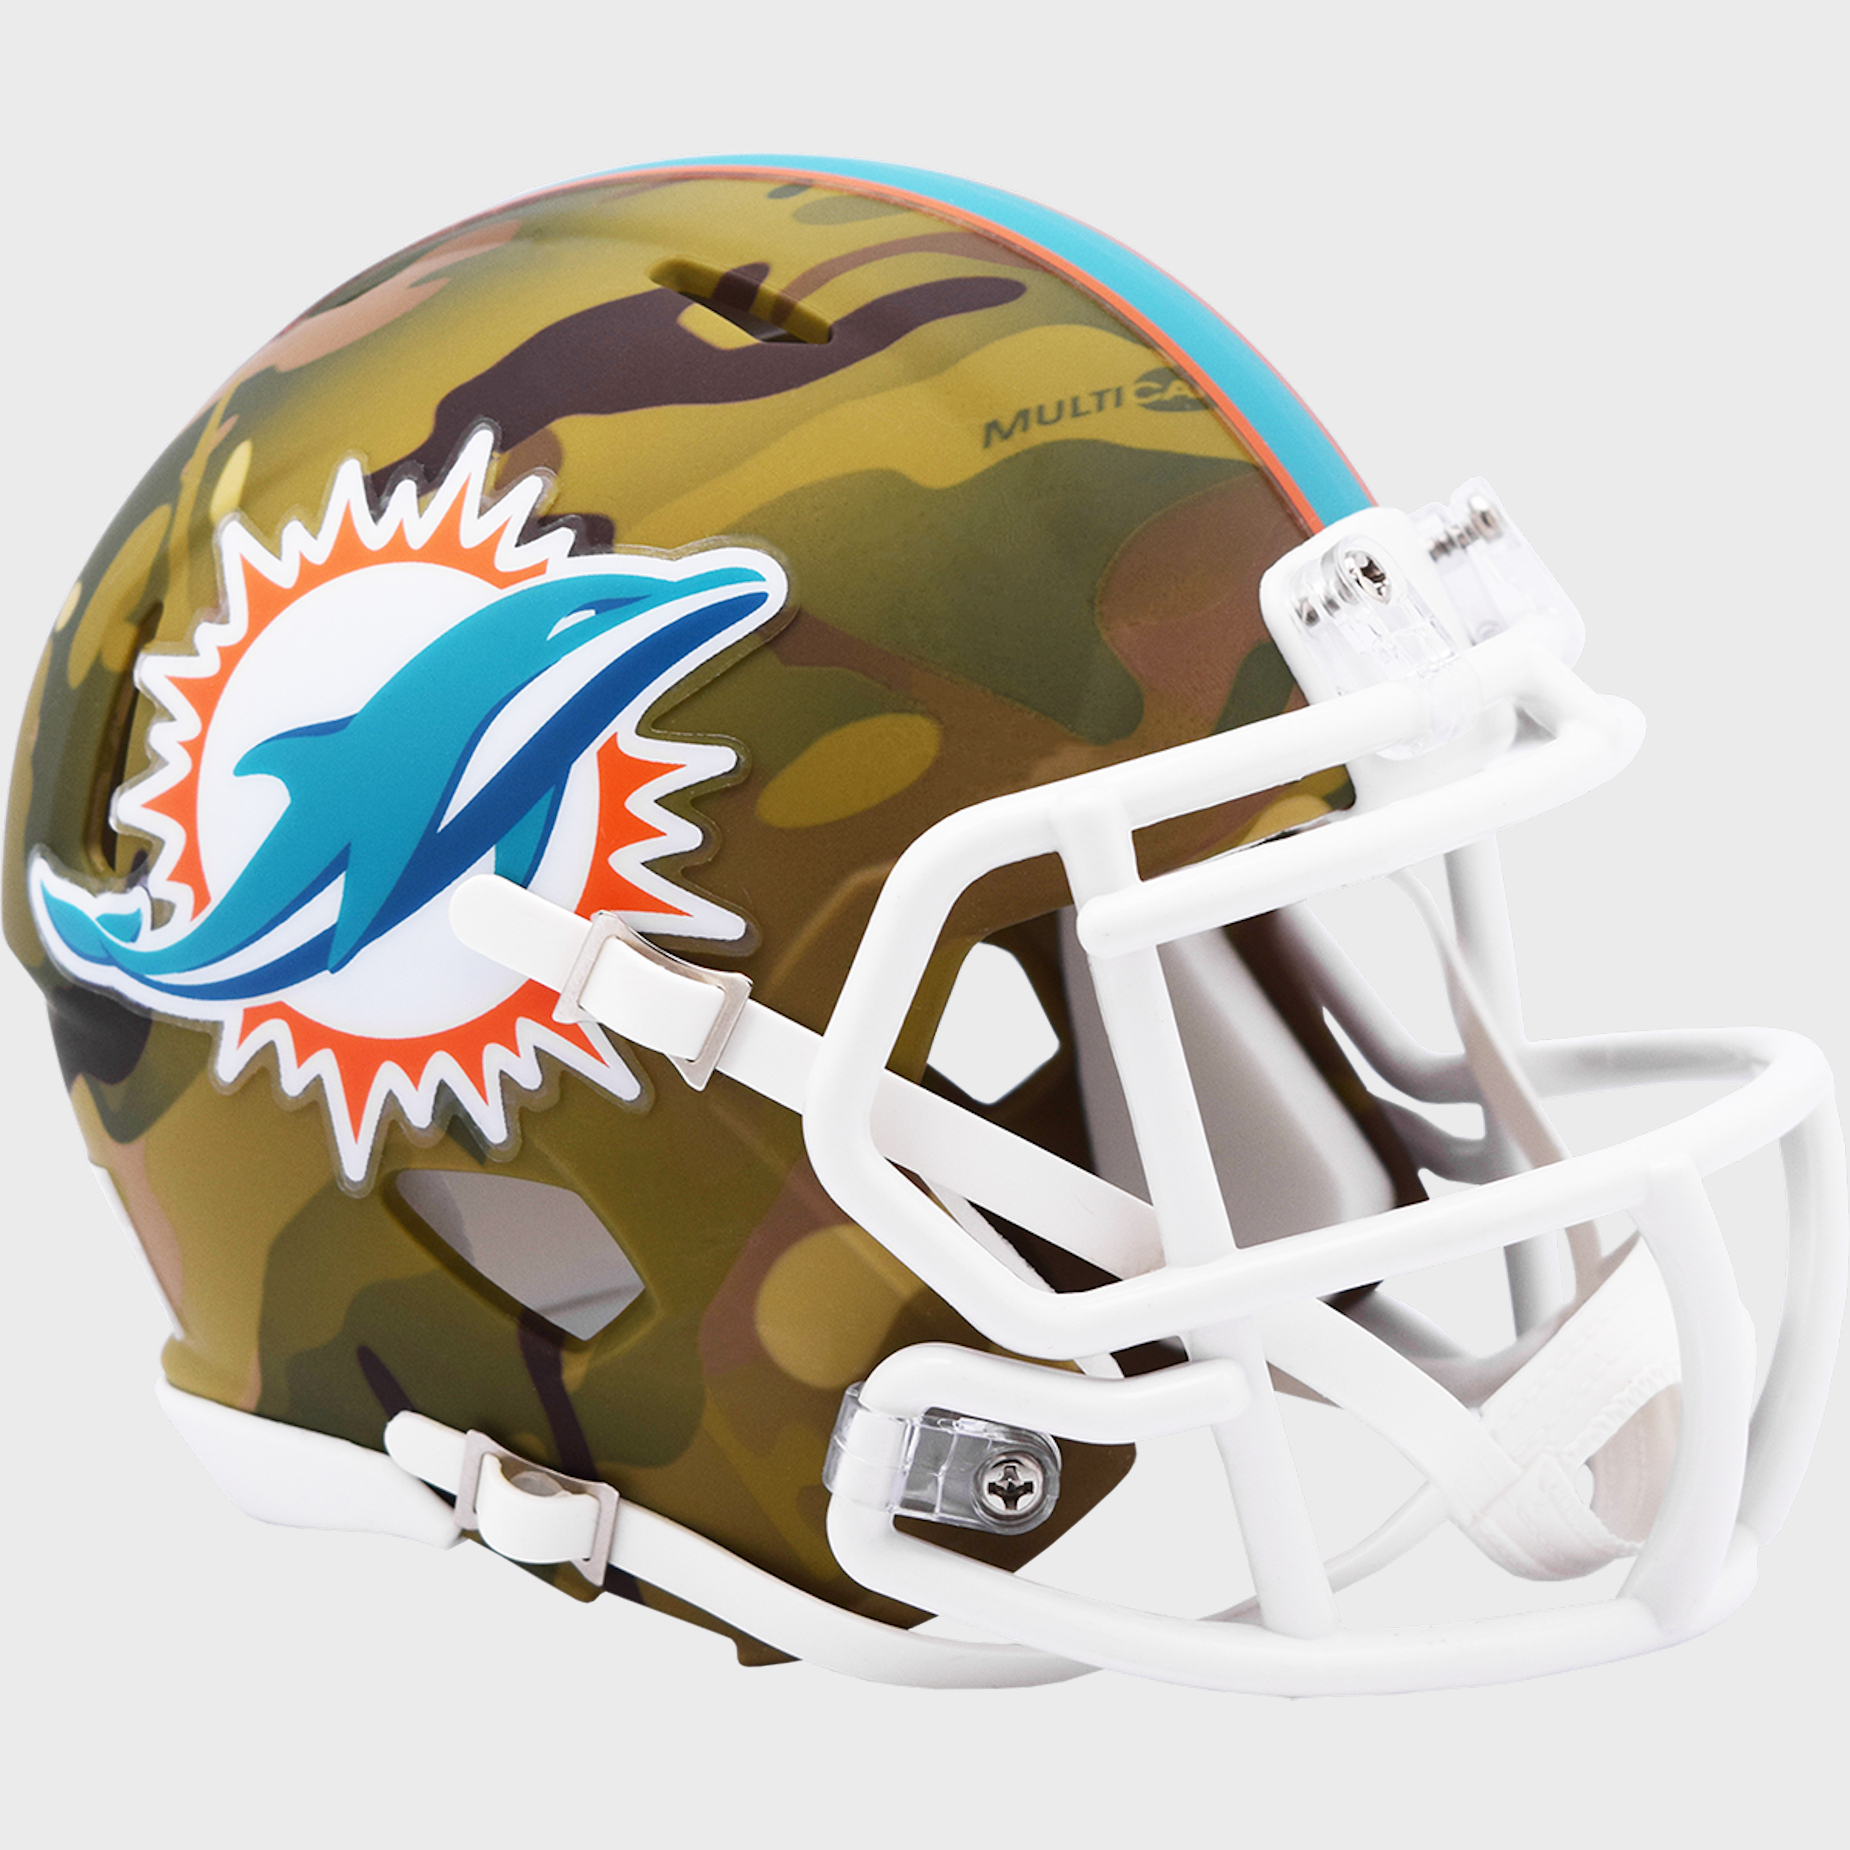 Miami Dolphins NFL Mini Speed Football Helmet <B>CAMO</B>